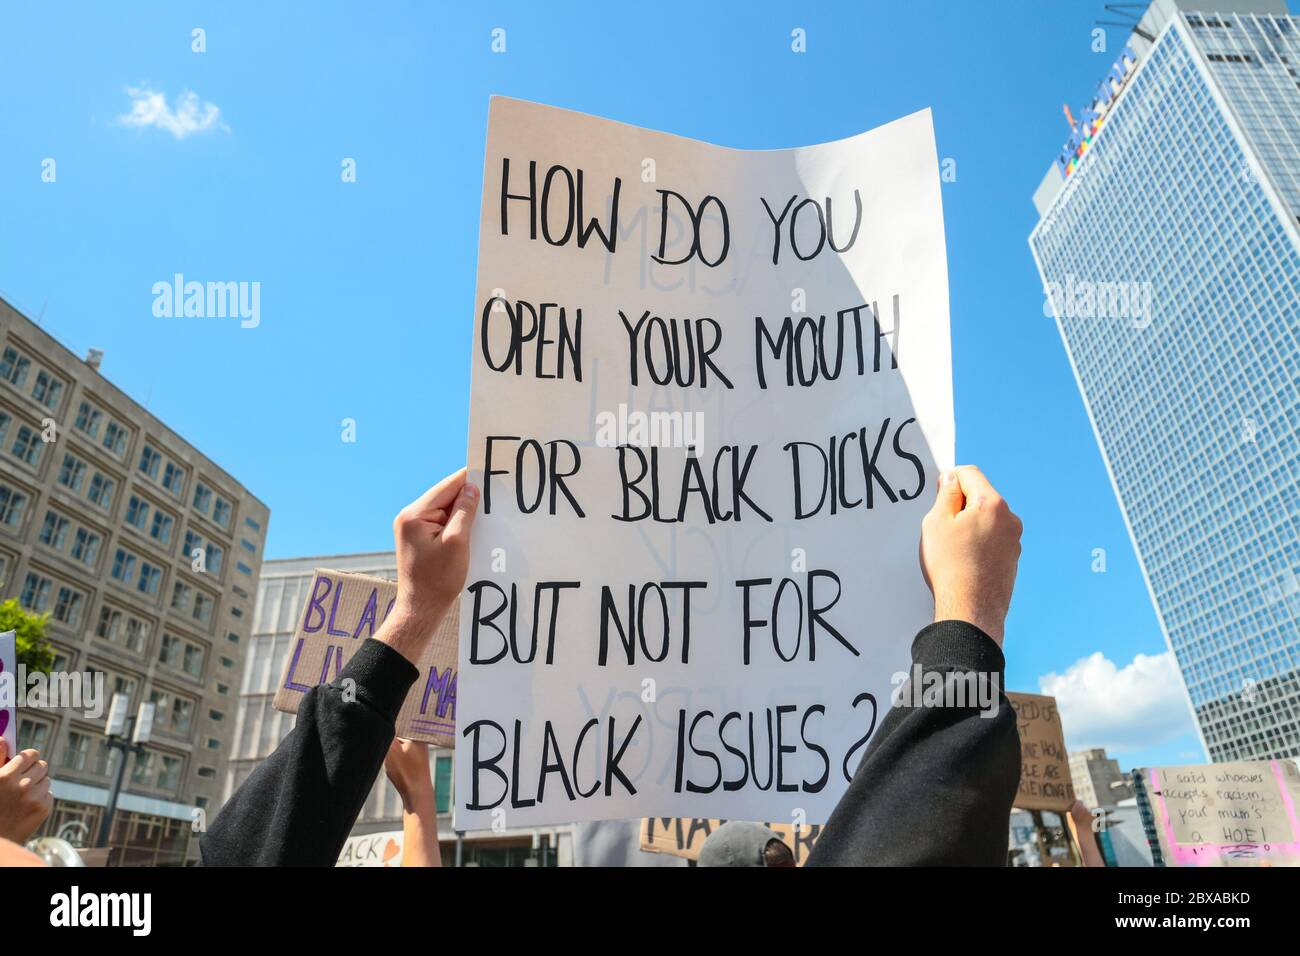 sign-reading-how-do-you-open-your-mouth-